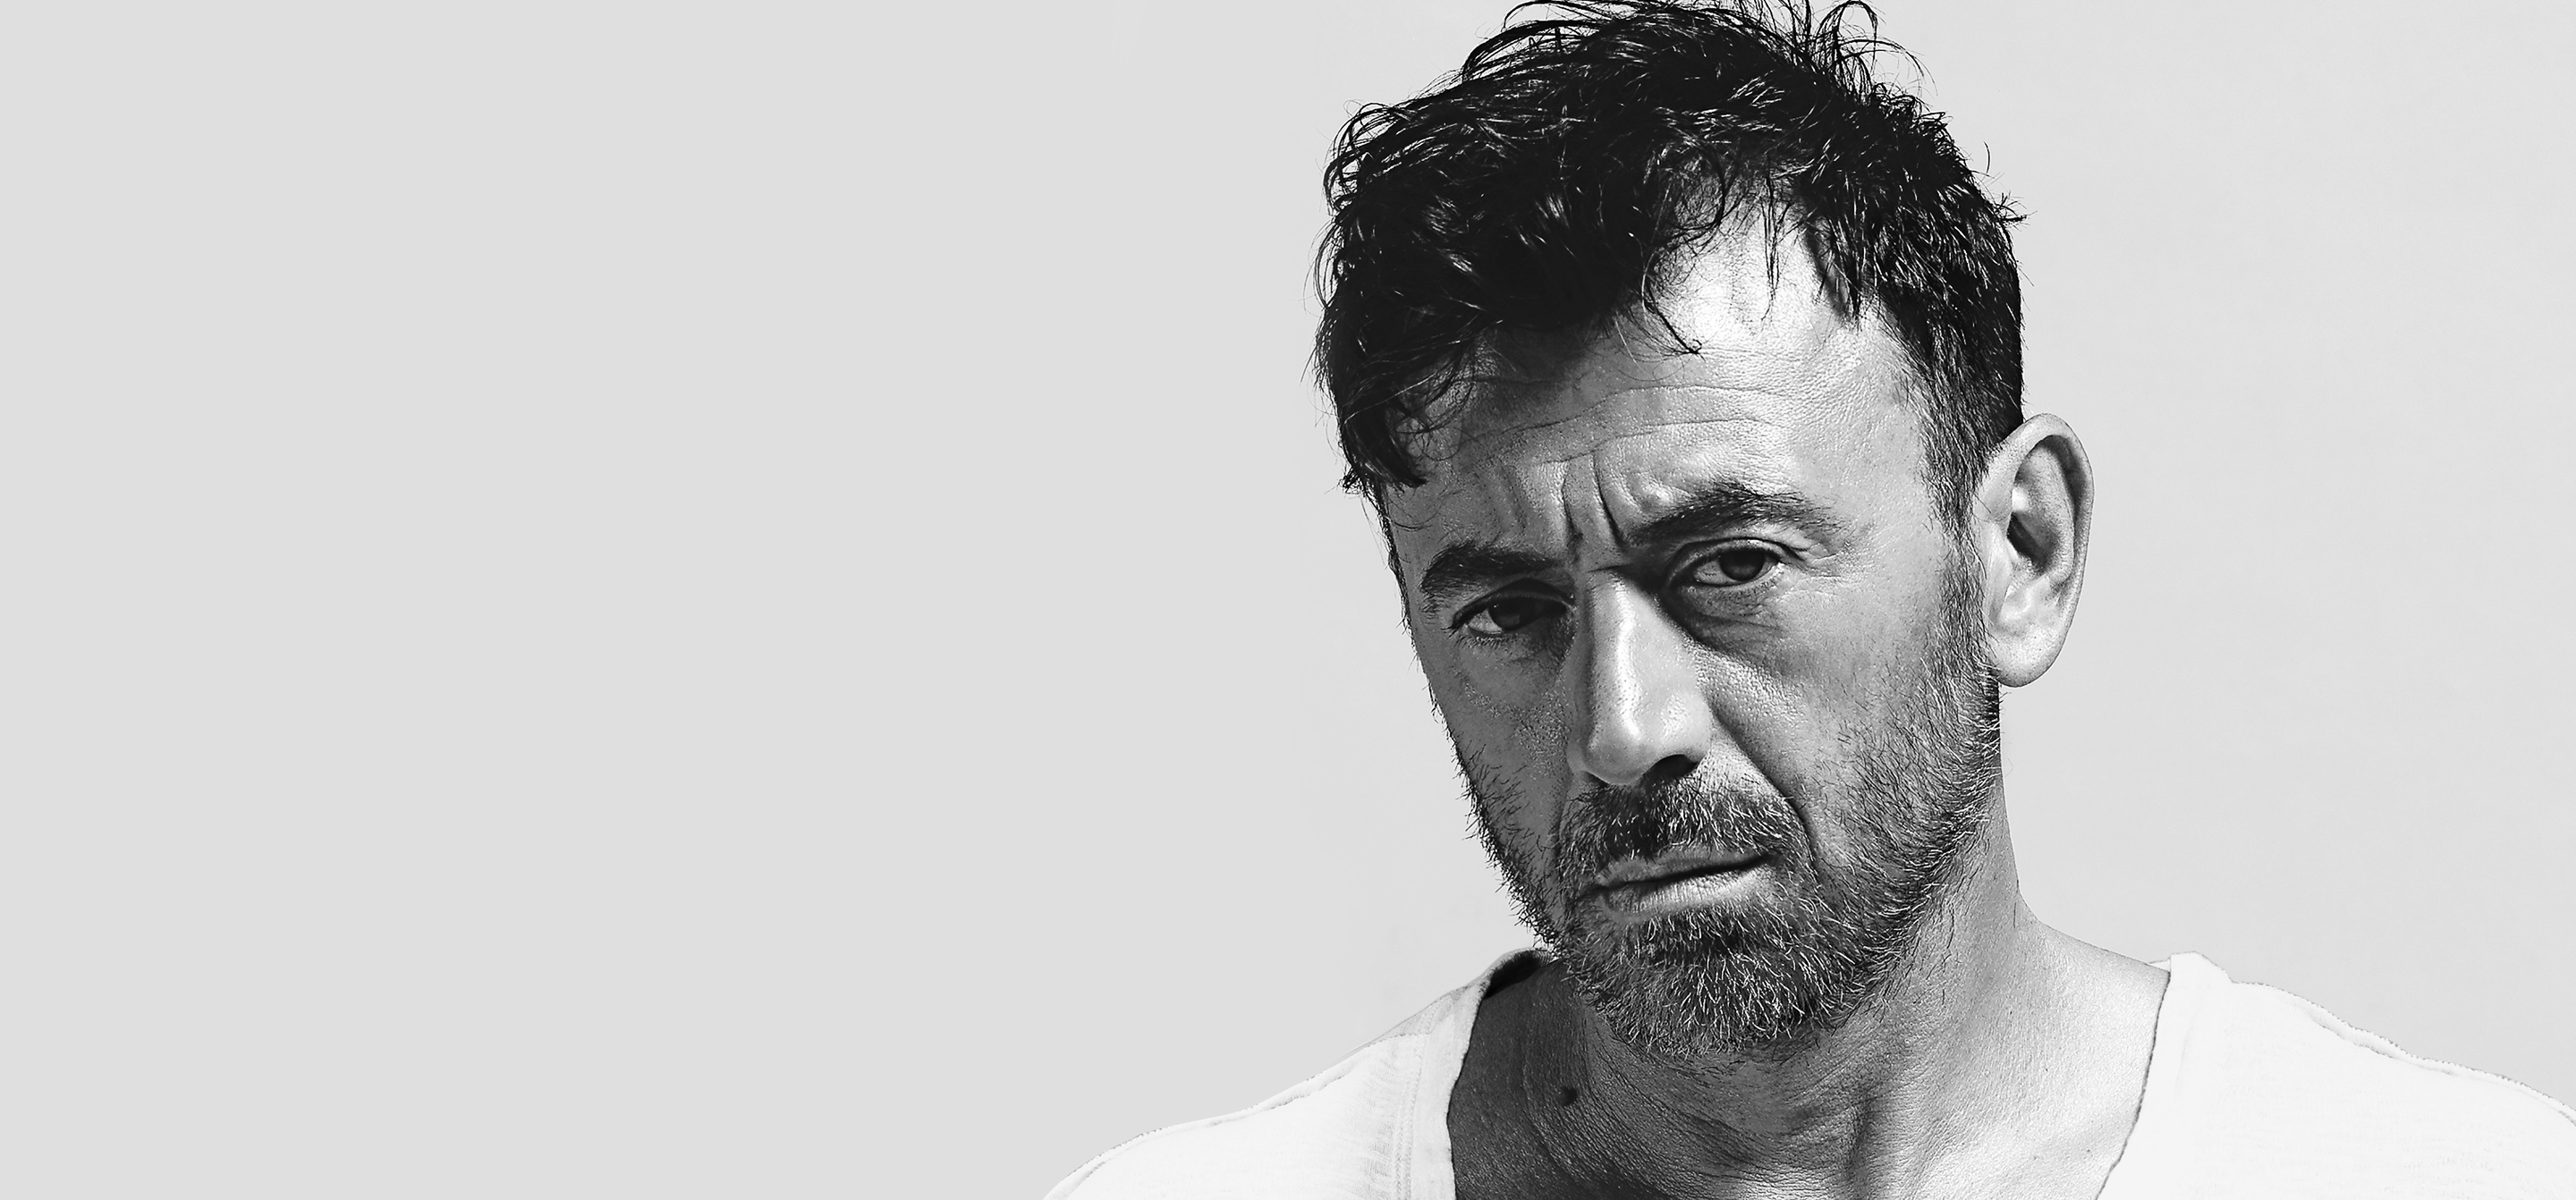 Benny Benassi Wallpapers Images Photos Pictures Backgrounds 2880x1342